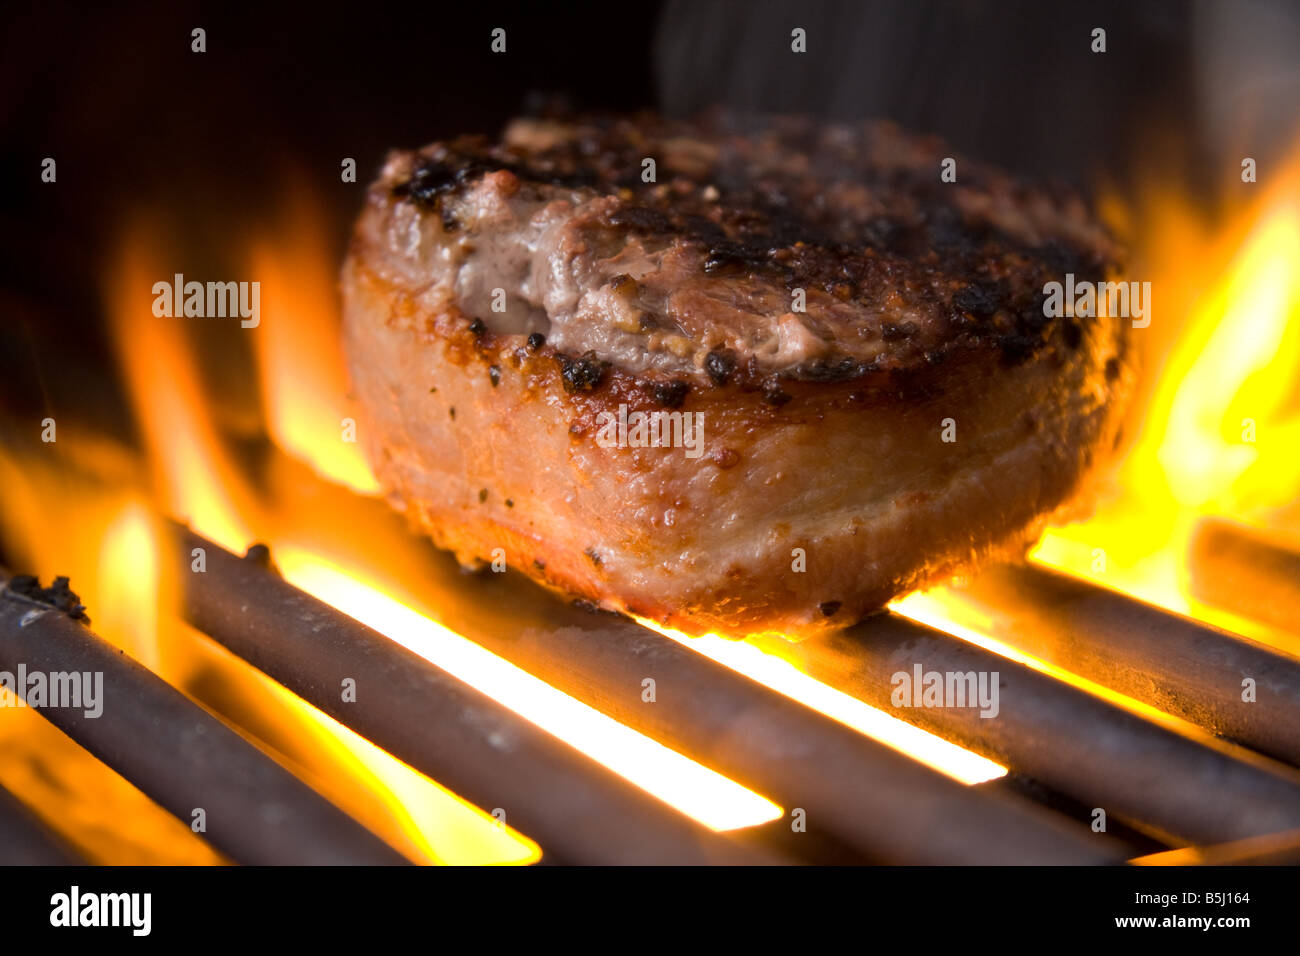 A Bacon Wrapped Beef Tenderloin Filet Cooking On A Gas Grill